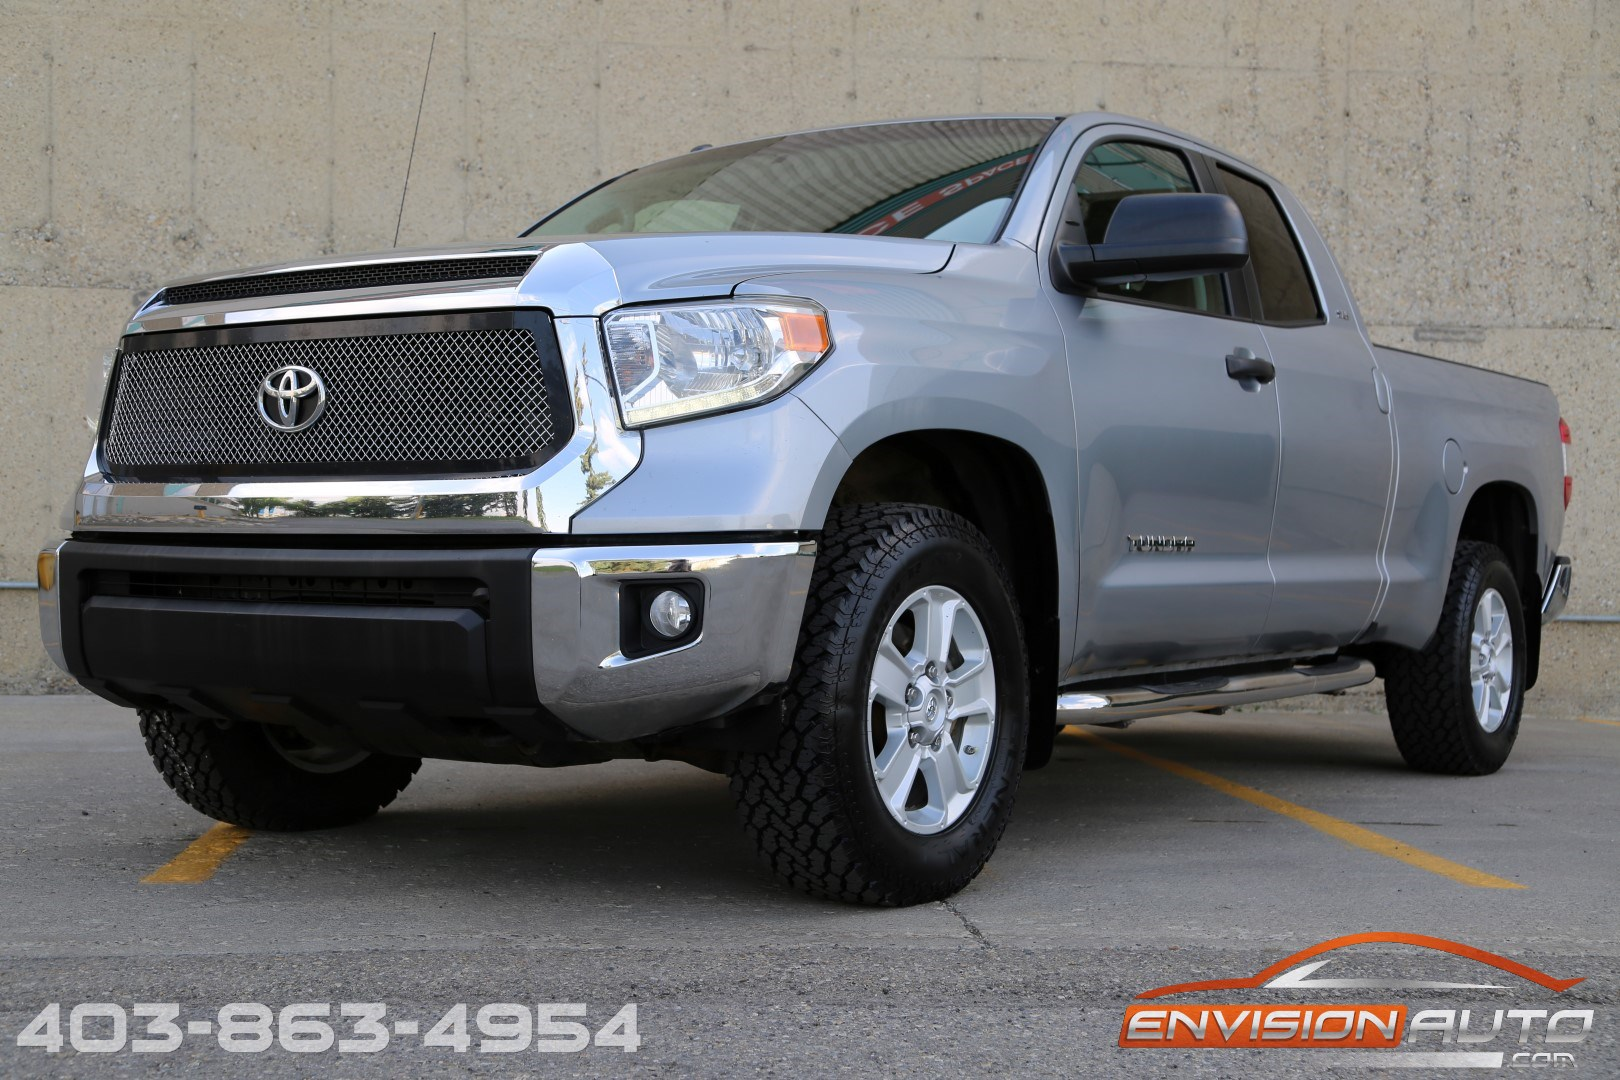 2014 toyota tundra double cab sr5 4 6l v8 one owner clean history envision auto. Black Bedroom Furniture Sets. Home Design Ideas